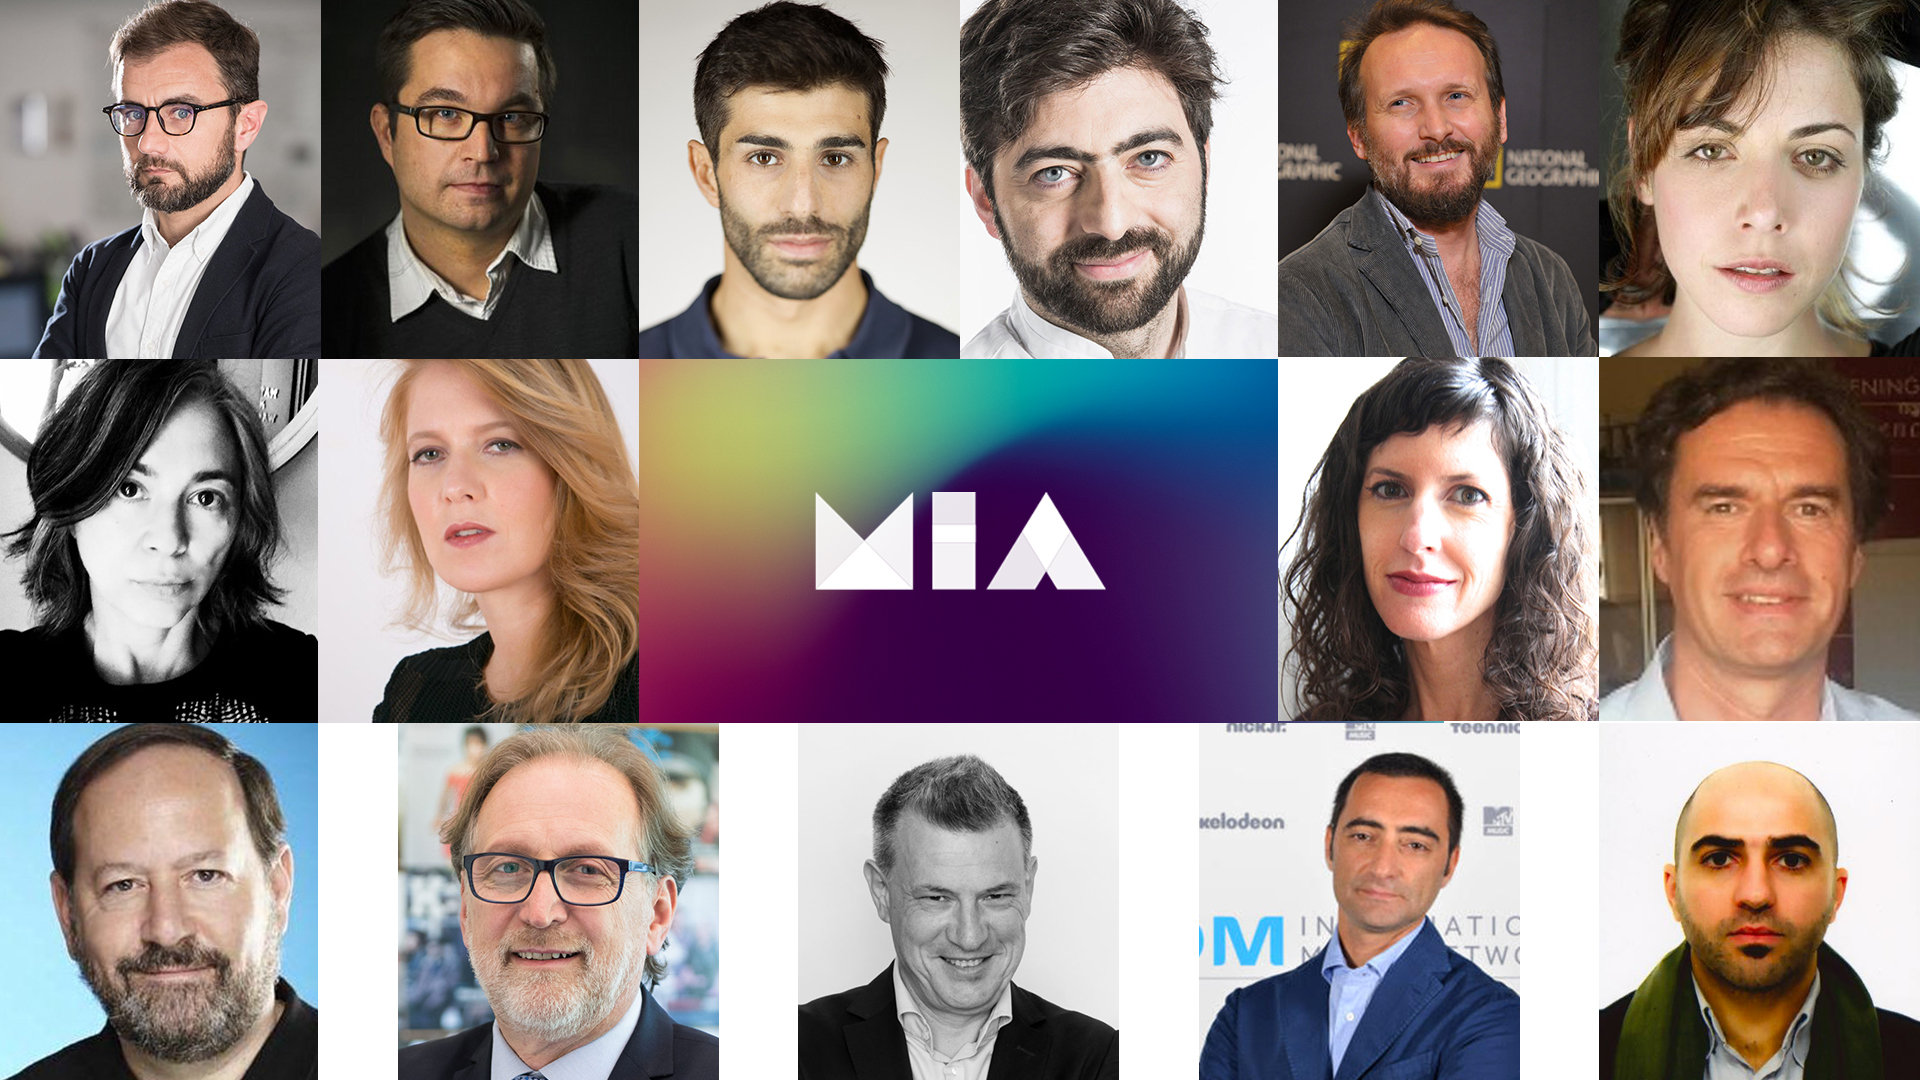 MIA DOC 2019 – The Board Members have been announced